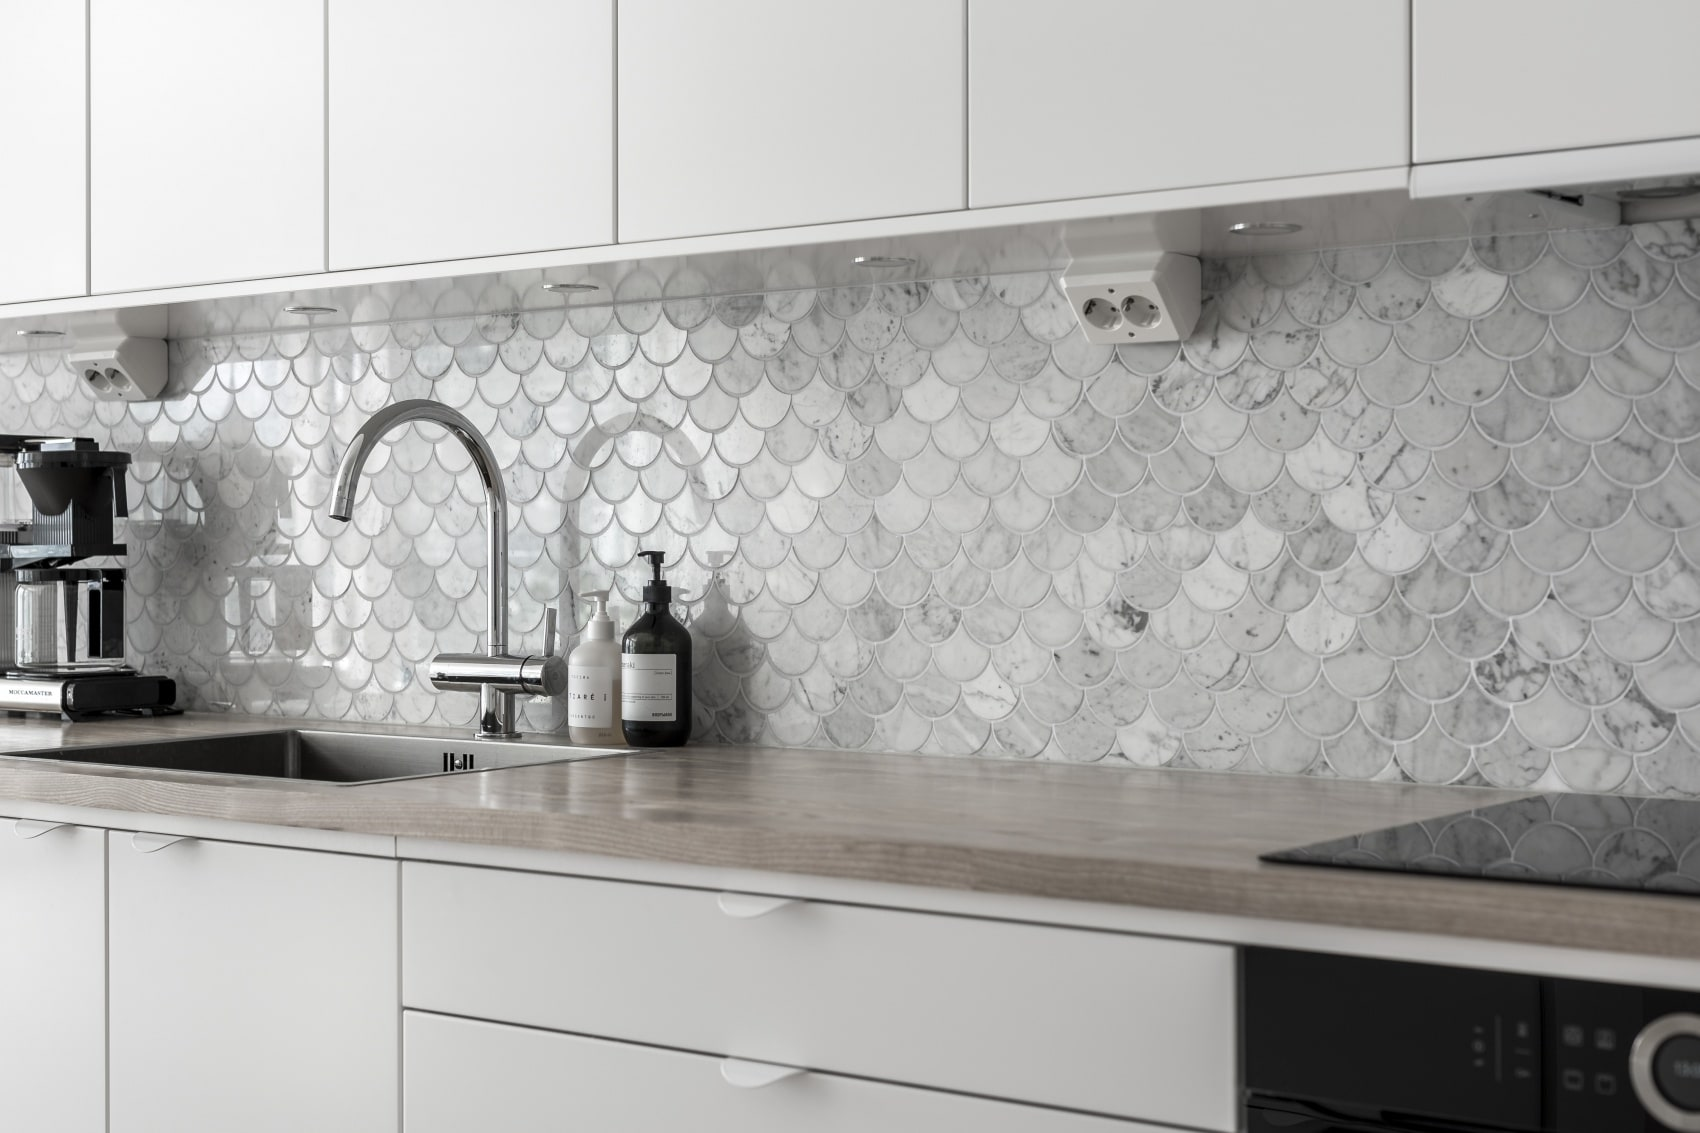 Bricmate Marmor Bianco Carrara U Fish Scale Carrara Polished